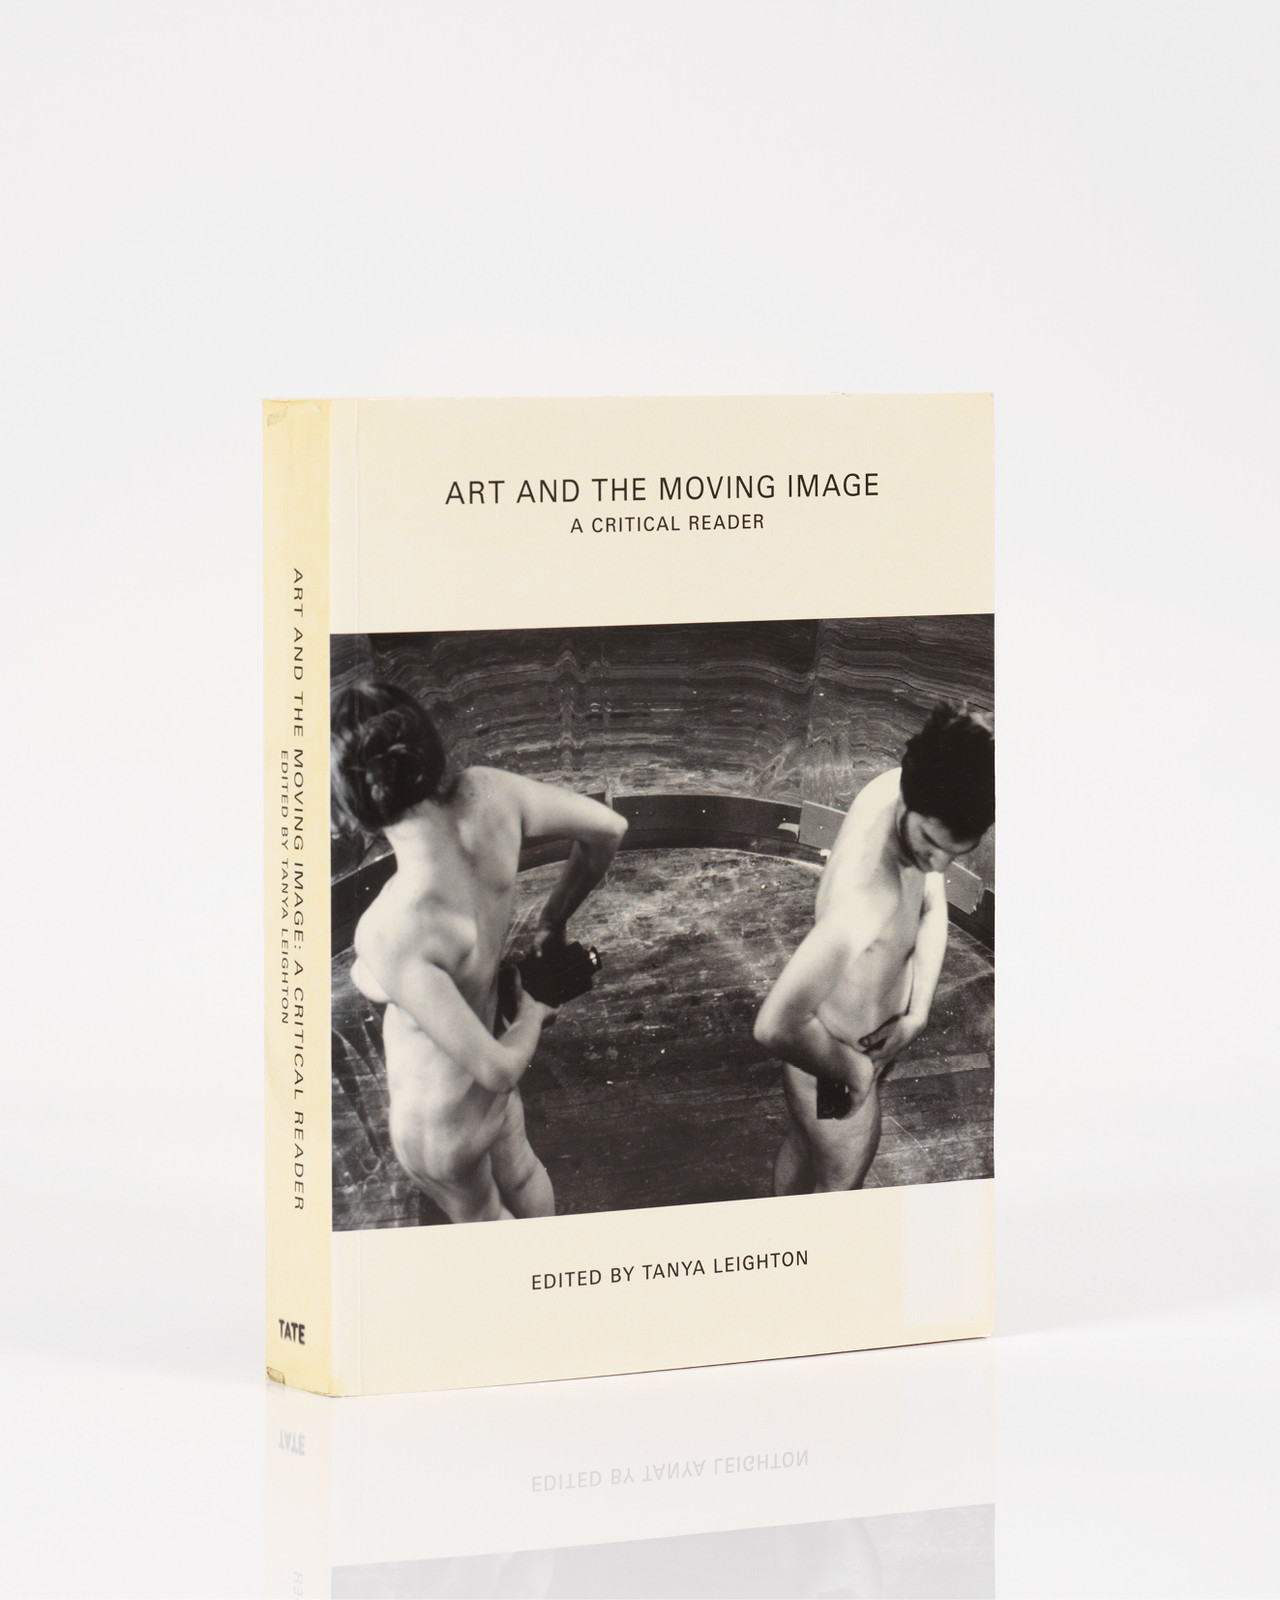 hight resolution of art and the moving image a critical reader